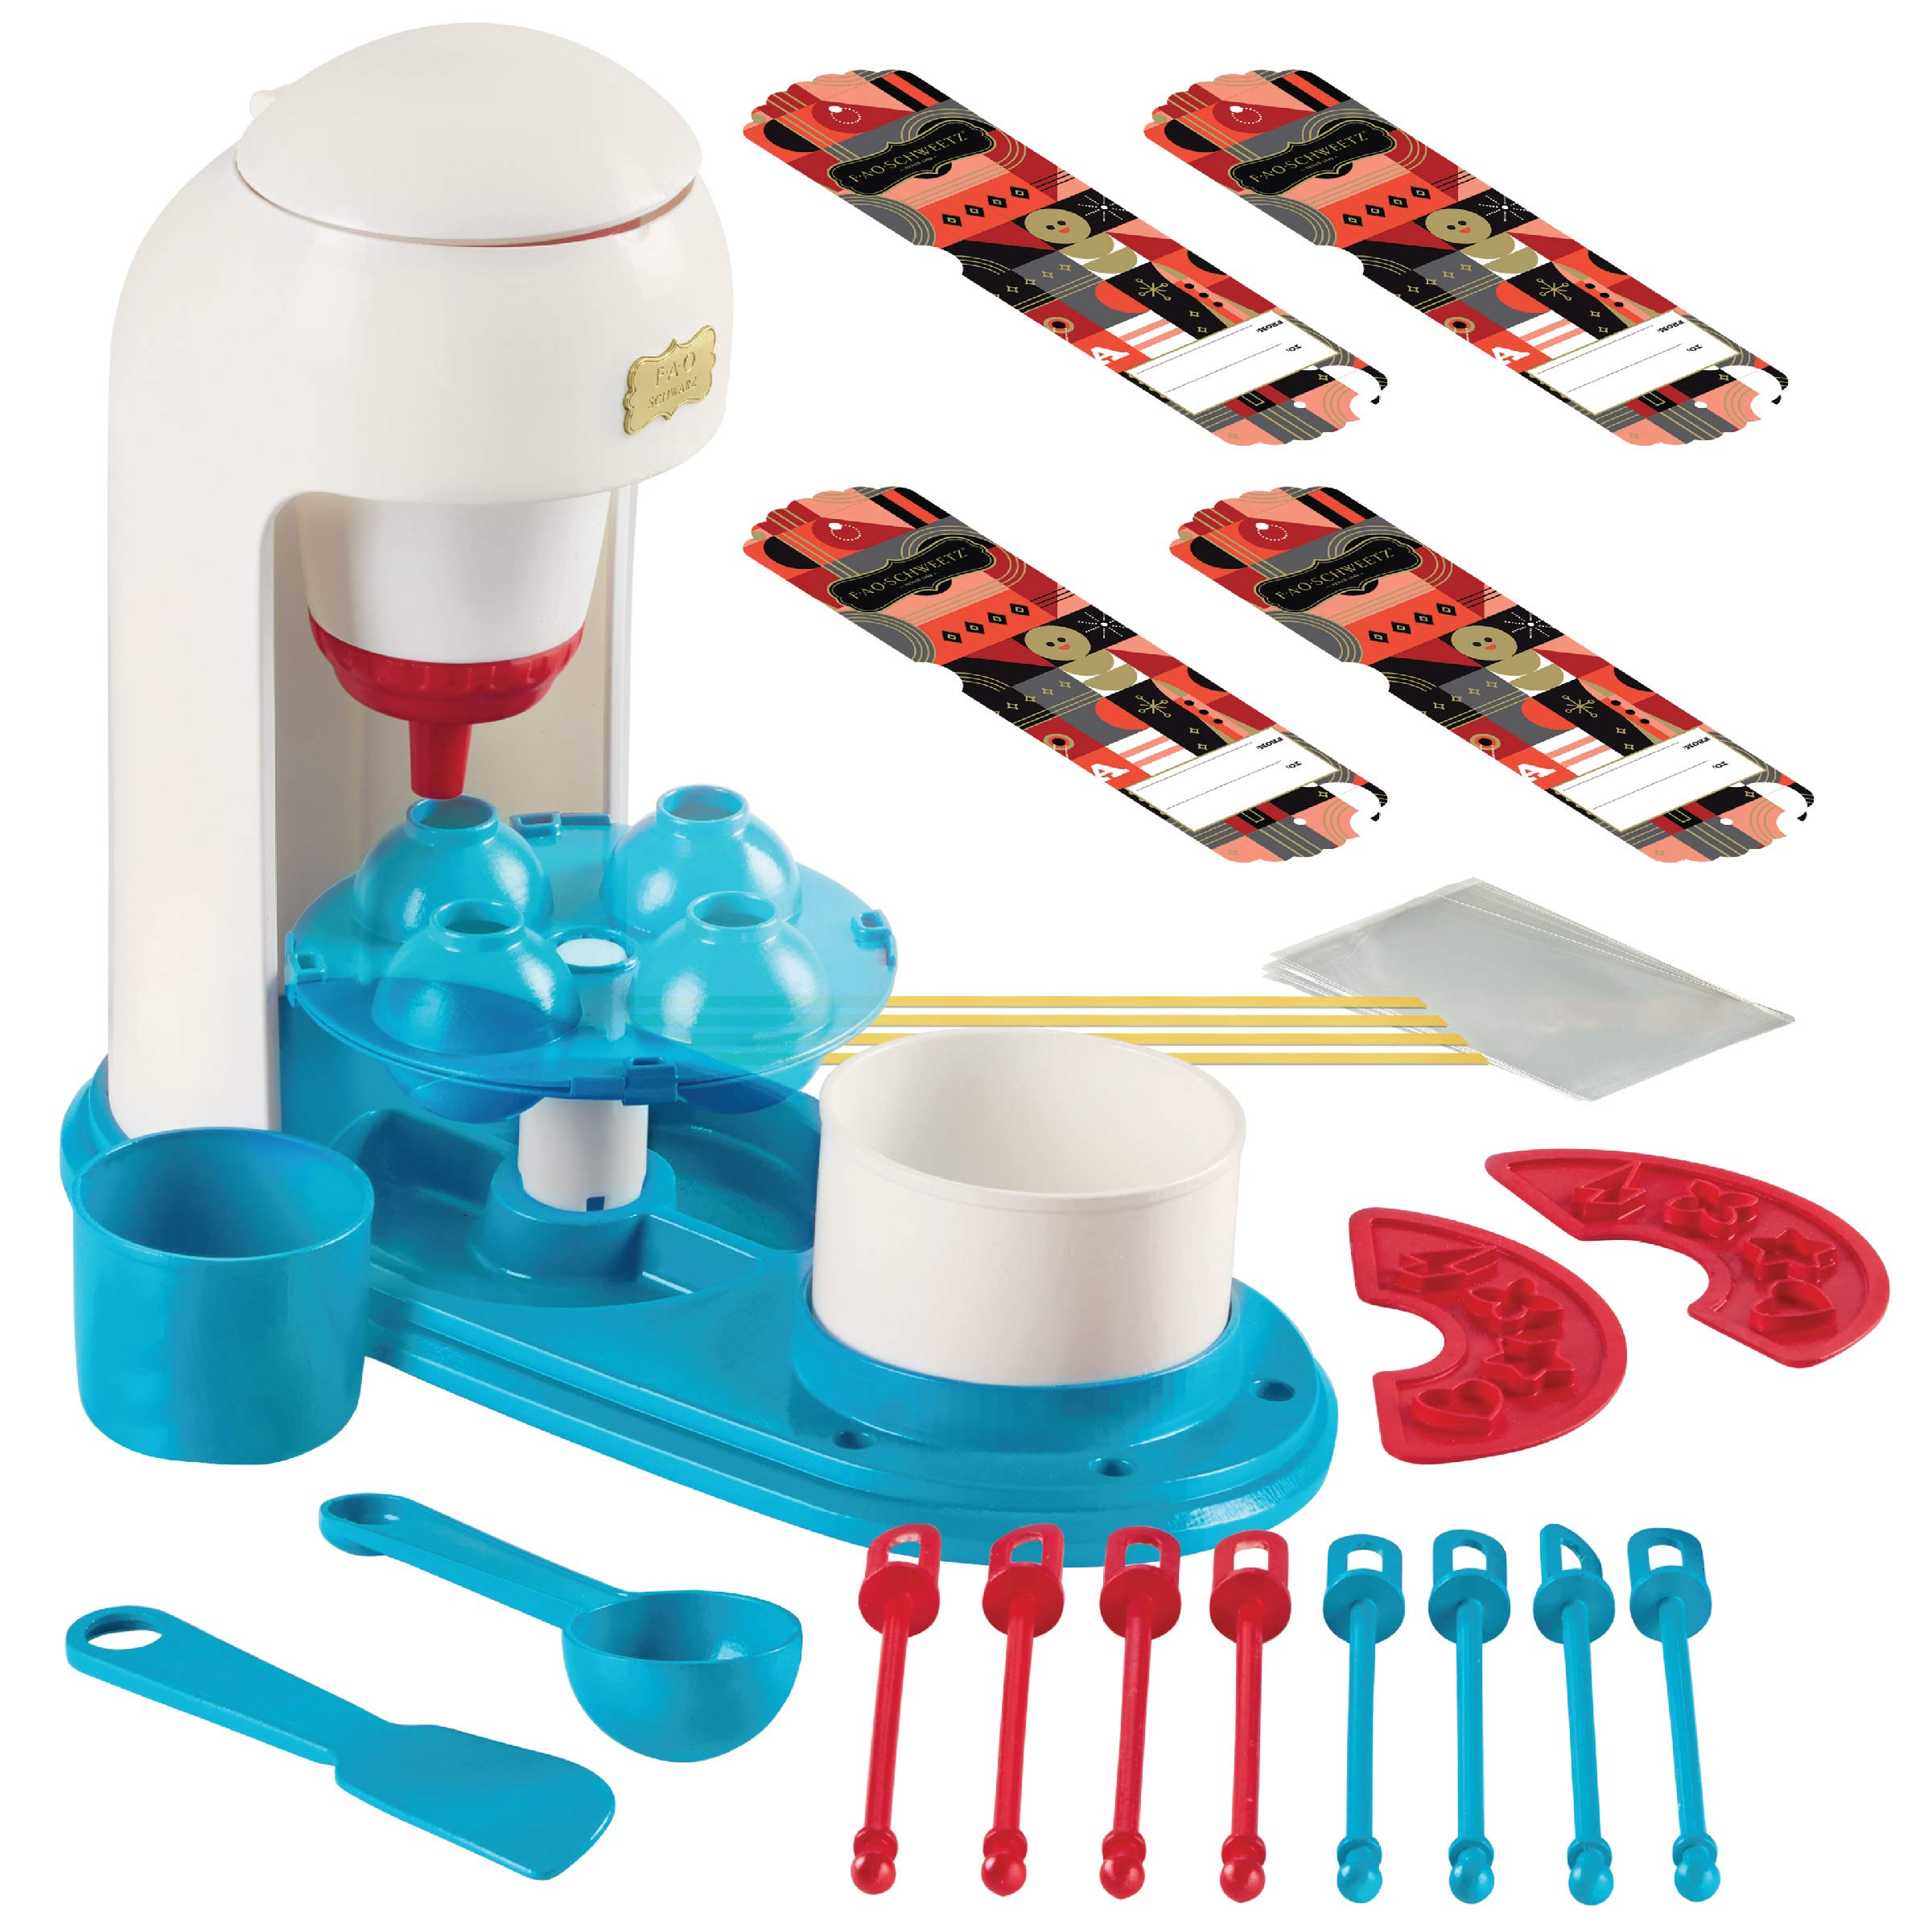 FAO SCHWARZ Kids No-Bake Vanilla Cake Pop Maker Complete DIY Kit, Includes Batter Piping Machine, Mold, 8 Sticks, Spoon, Spatula, Sprinkles Stencils, Mini Mixing Bowls, and Cake Mix & Sprinkles by FAO Schwarz